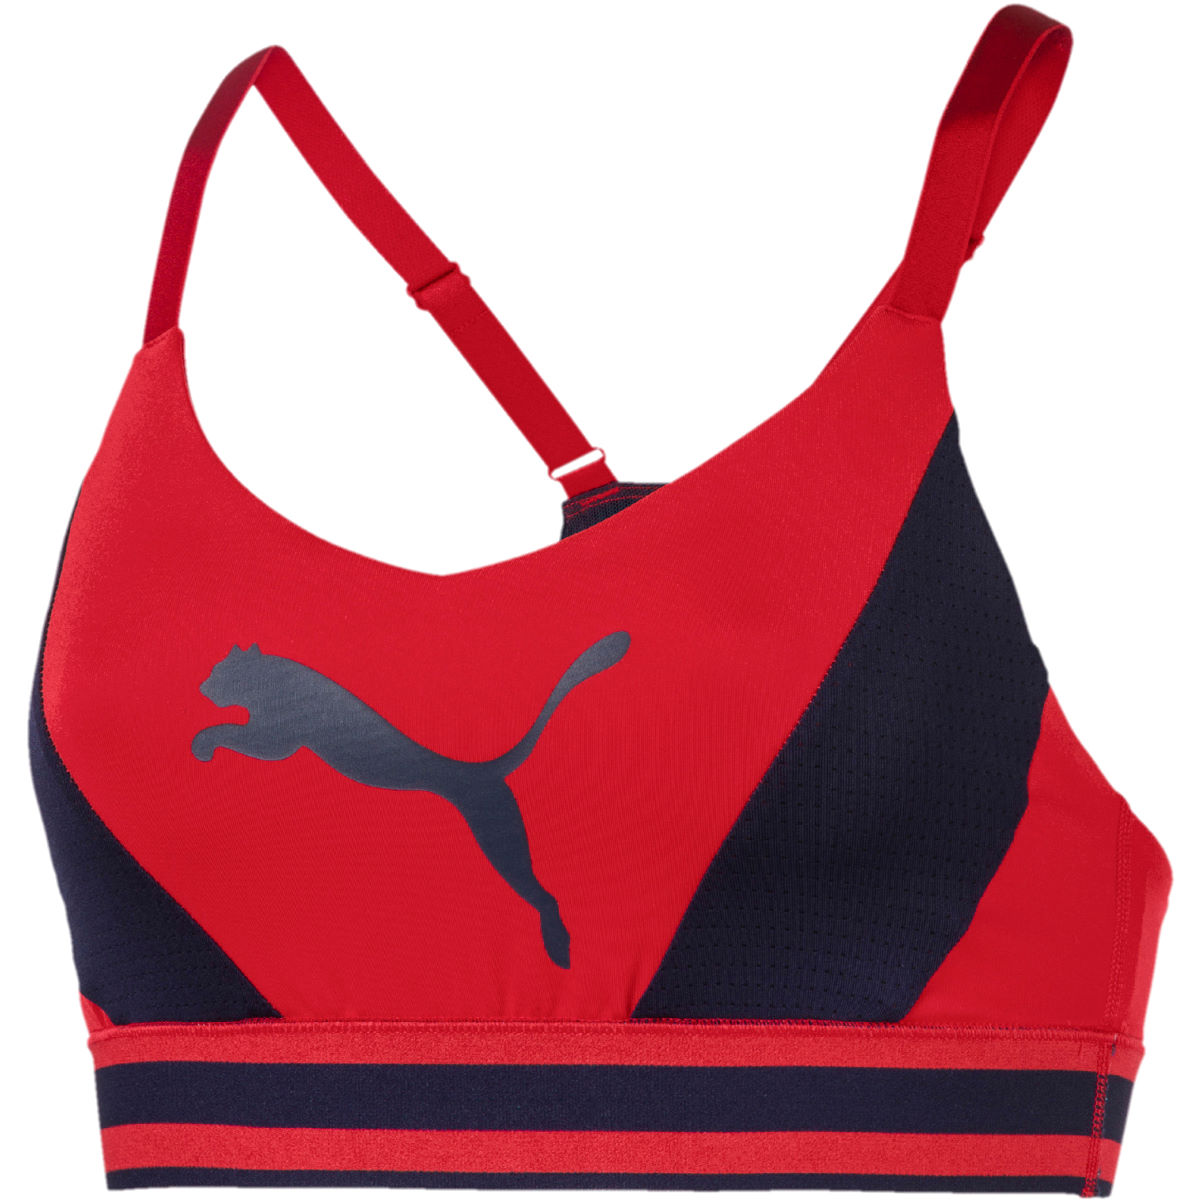 Puma A.C.E. Ultimate Sports Bra - Sujetadores